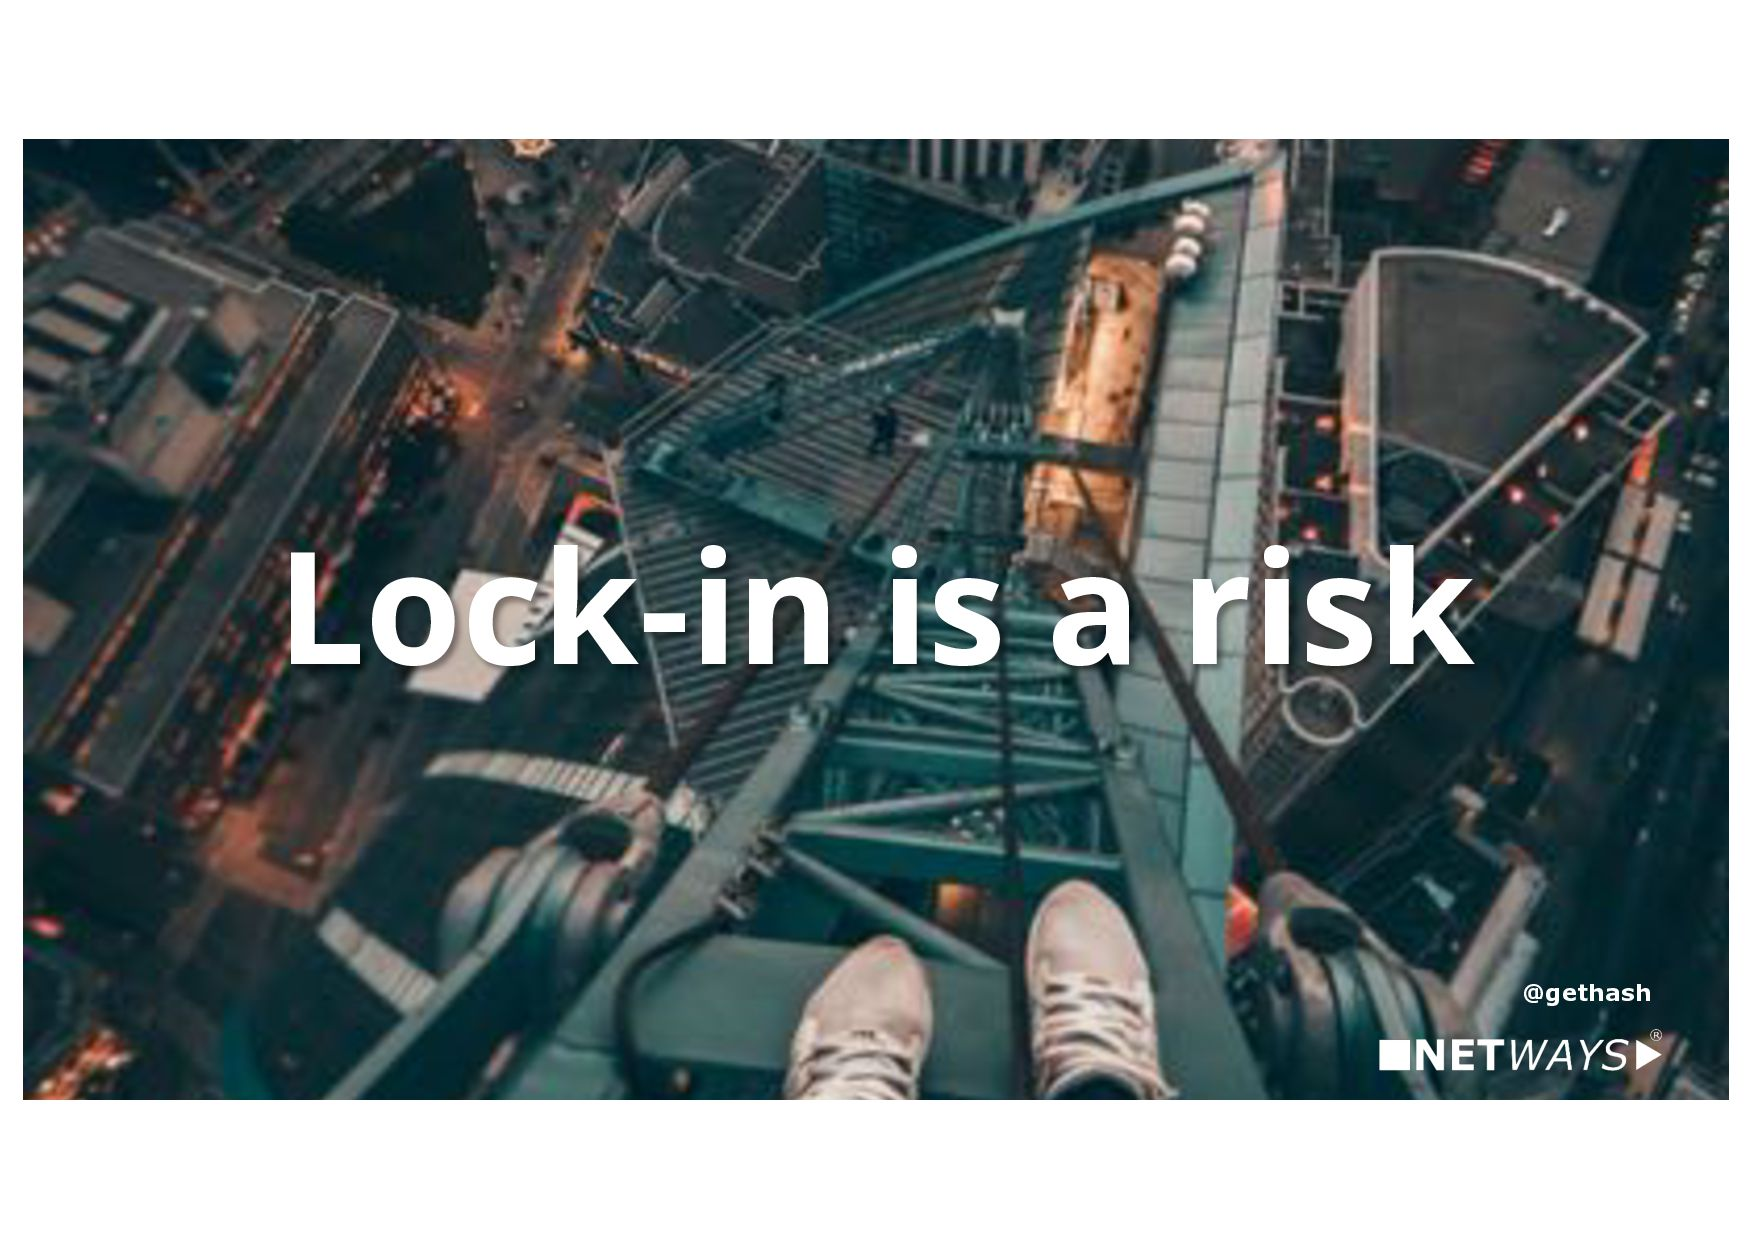 Slowness is a risk too